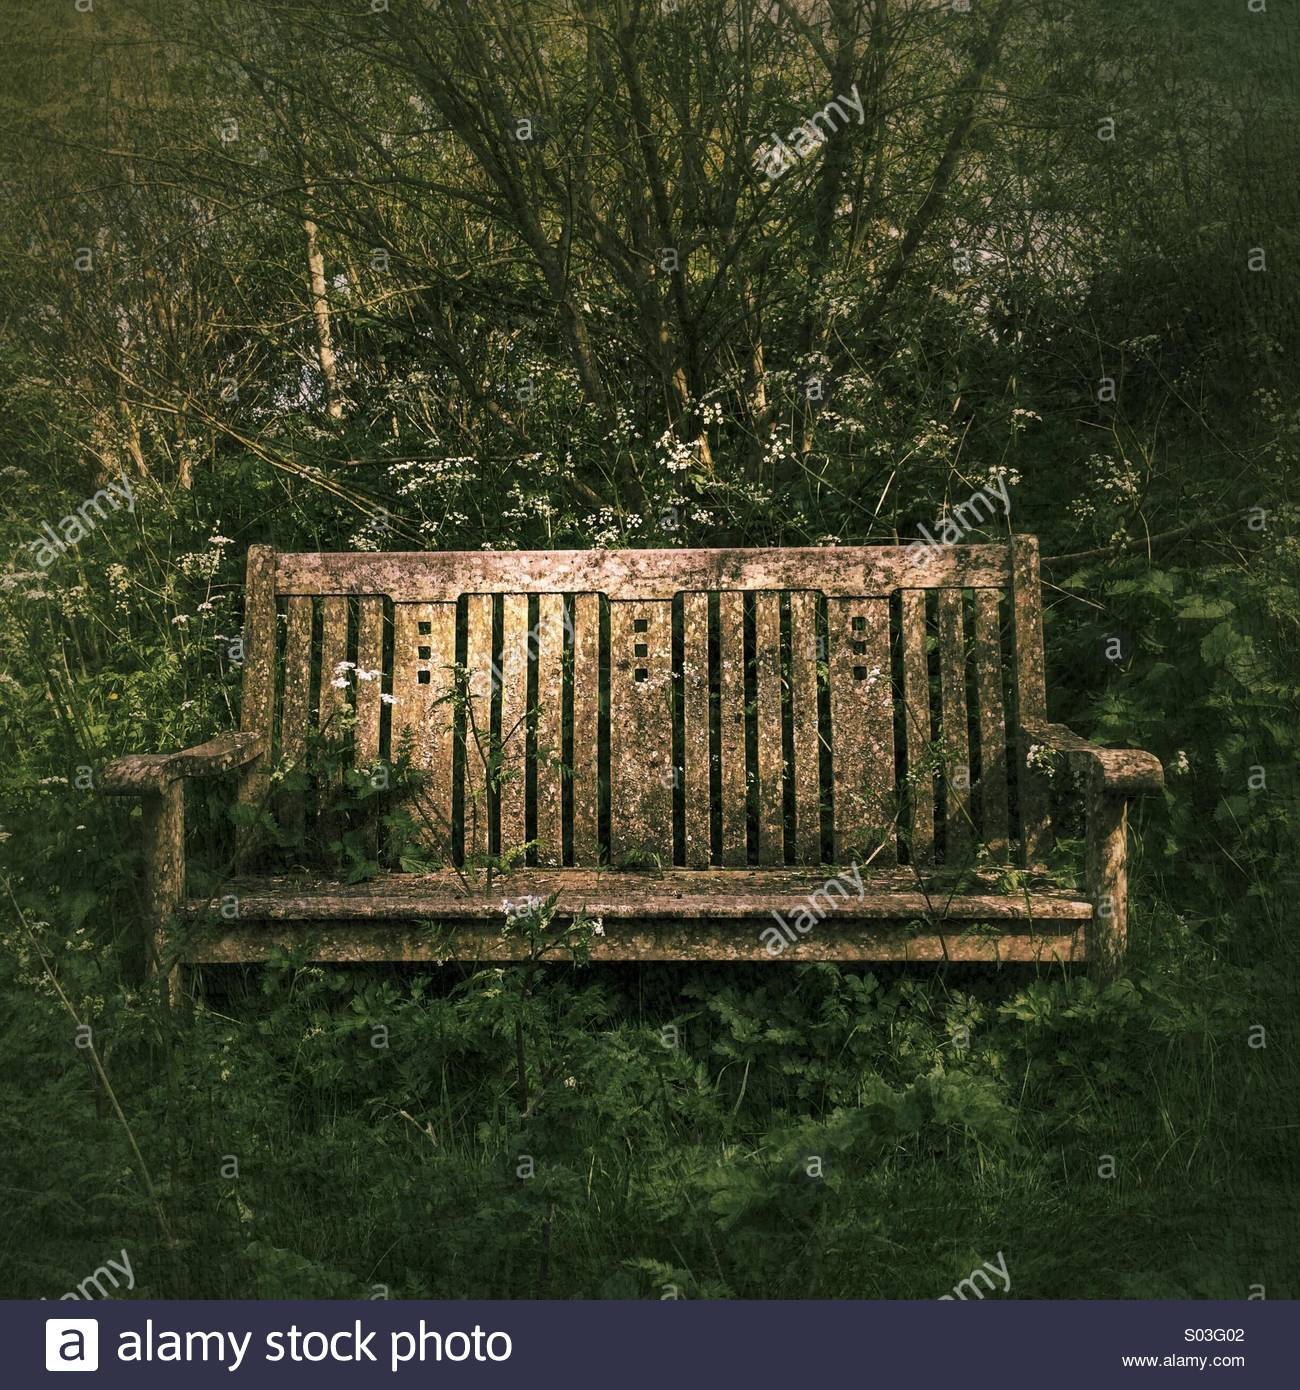 Old Wooden Seat or Bench - Stock Image